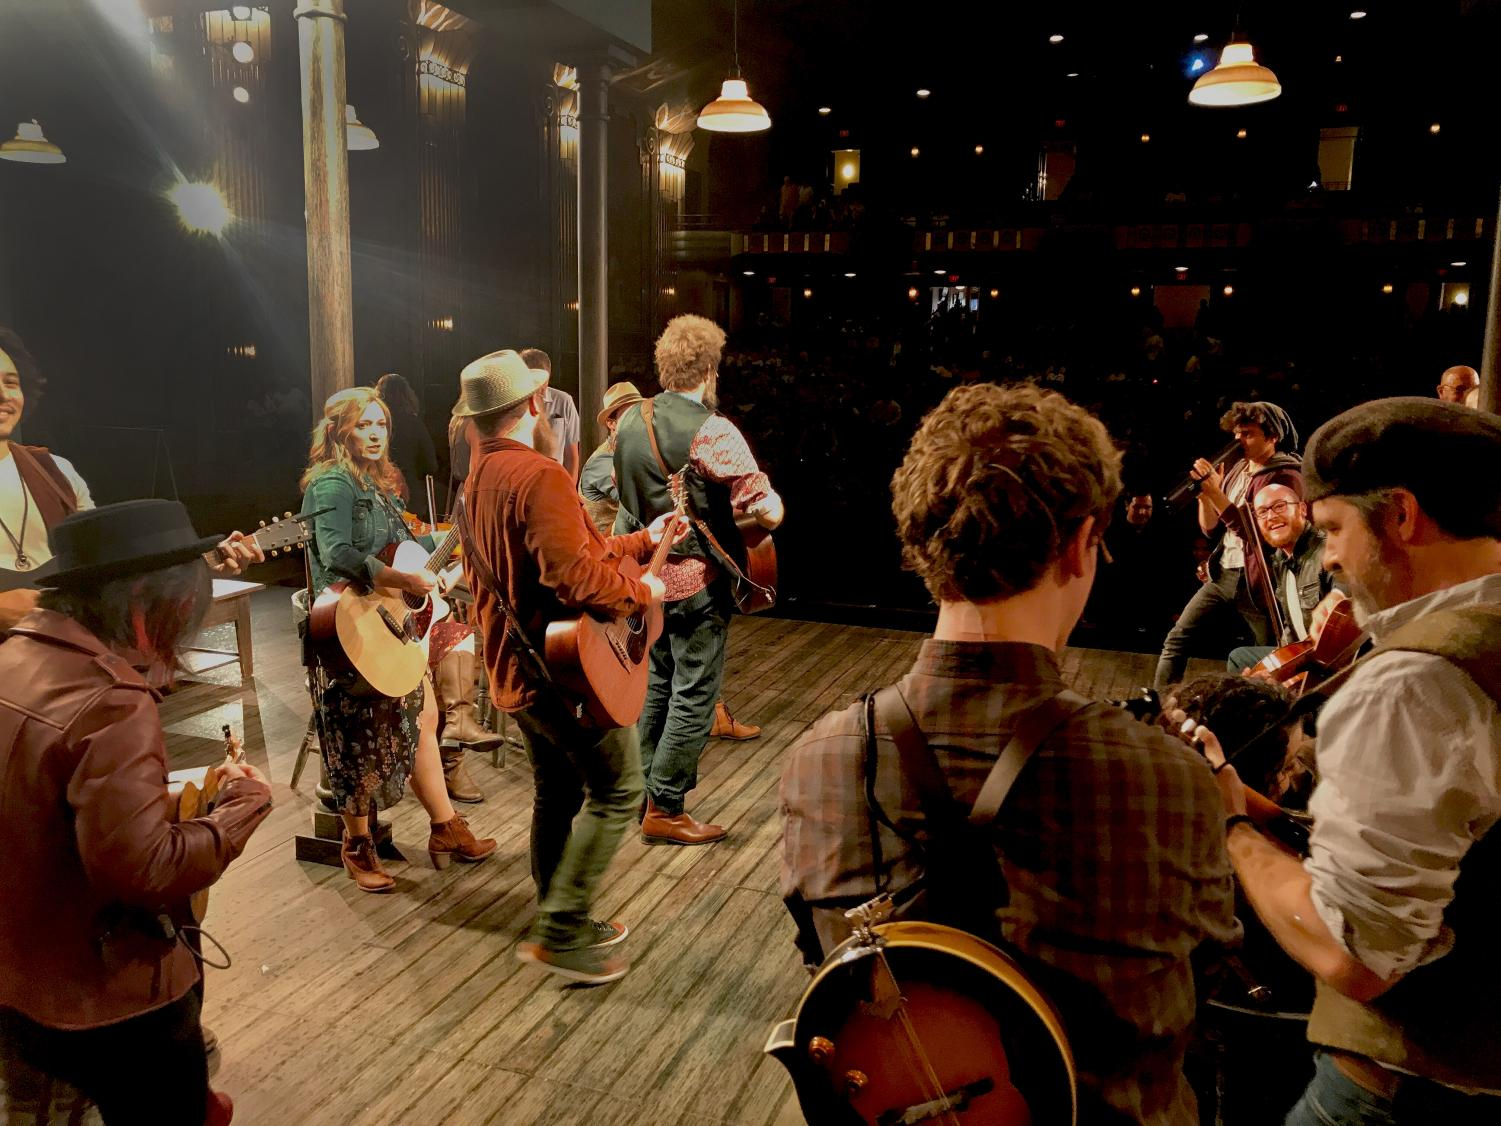 Photo by Jennifer Kurz: The Cast of Paramount's 'Once' performs on stage as patrons are served at the stage bar